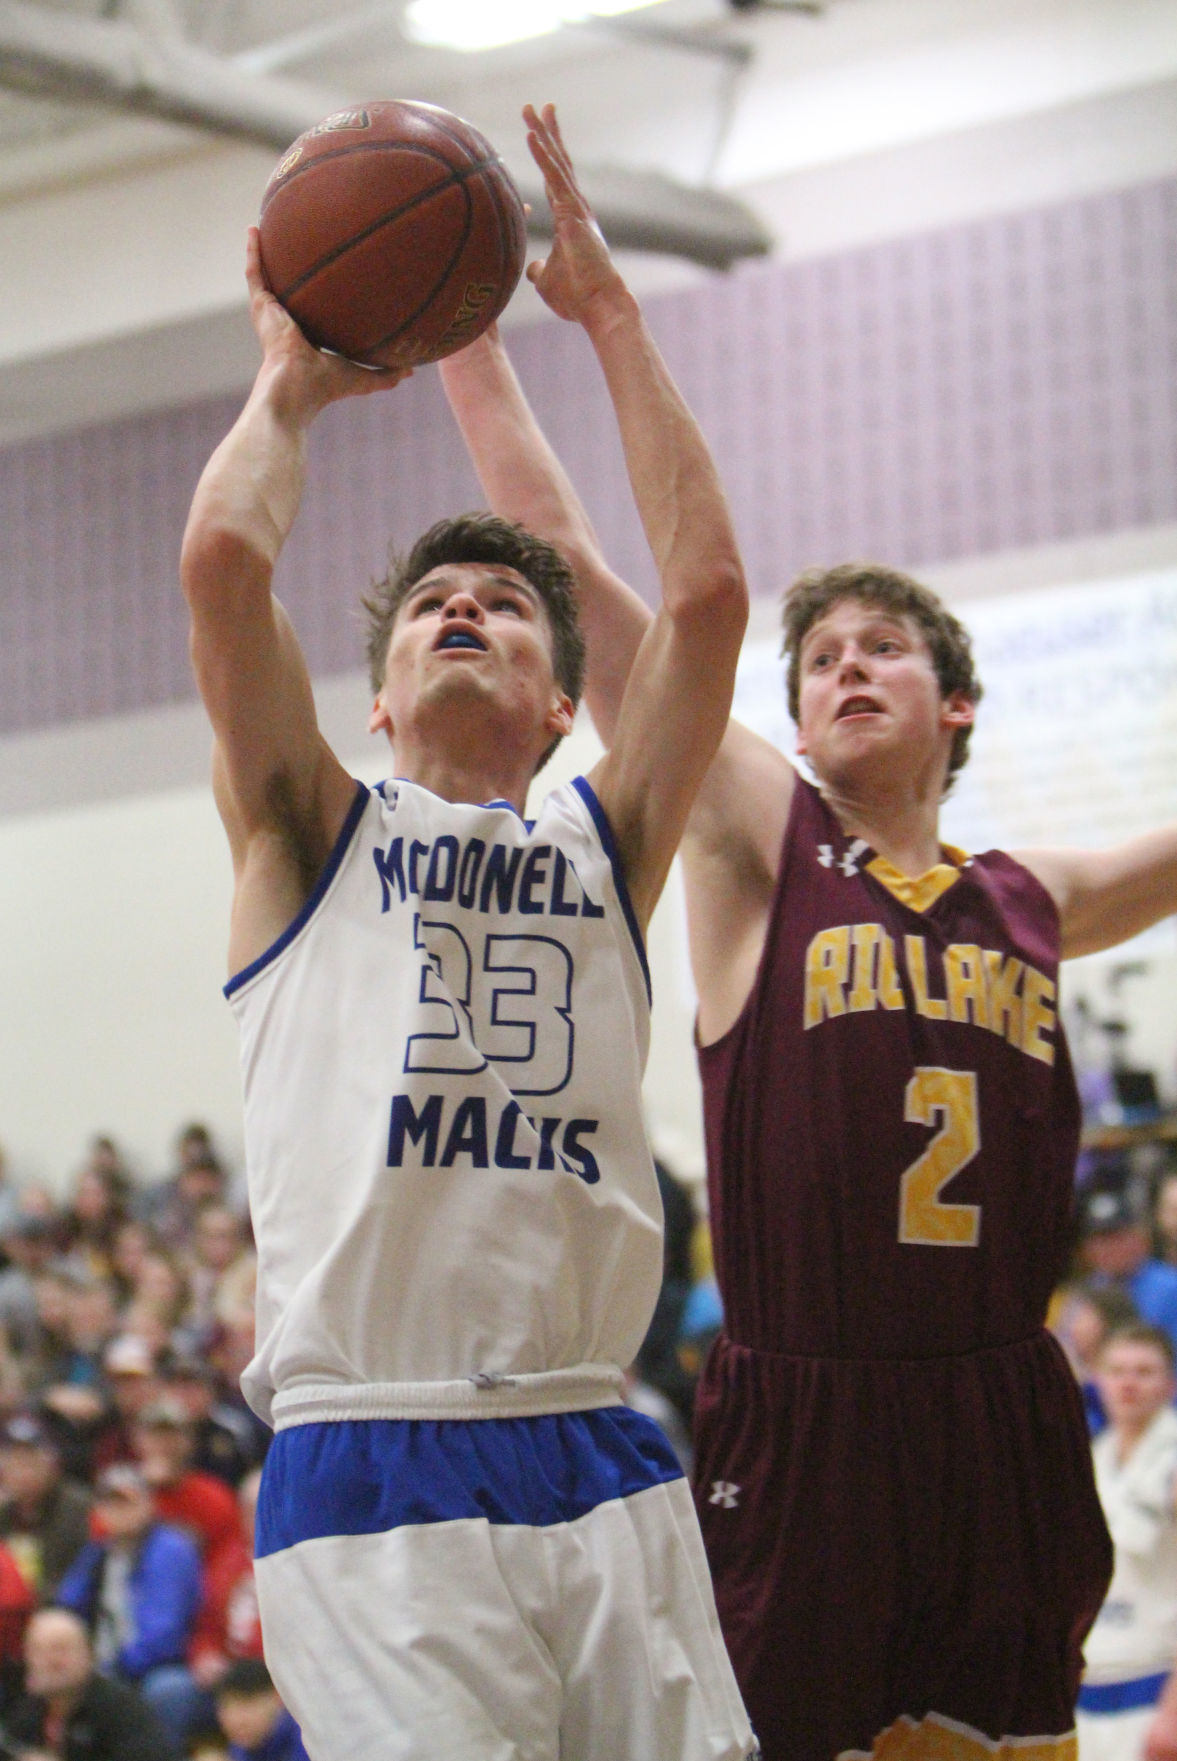 McDonell boys basketball vs Rib Lake at Chetek-Weyerhaeuser 3-8-18